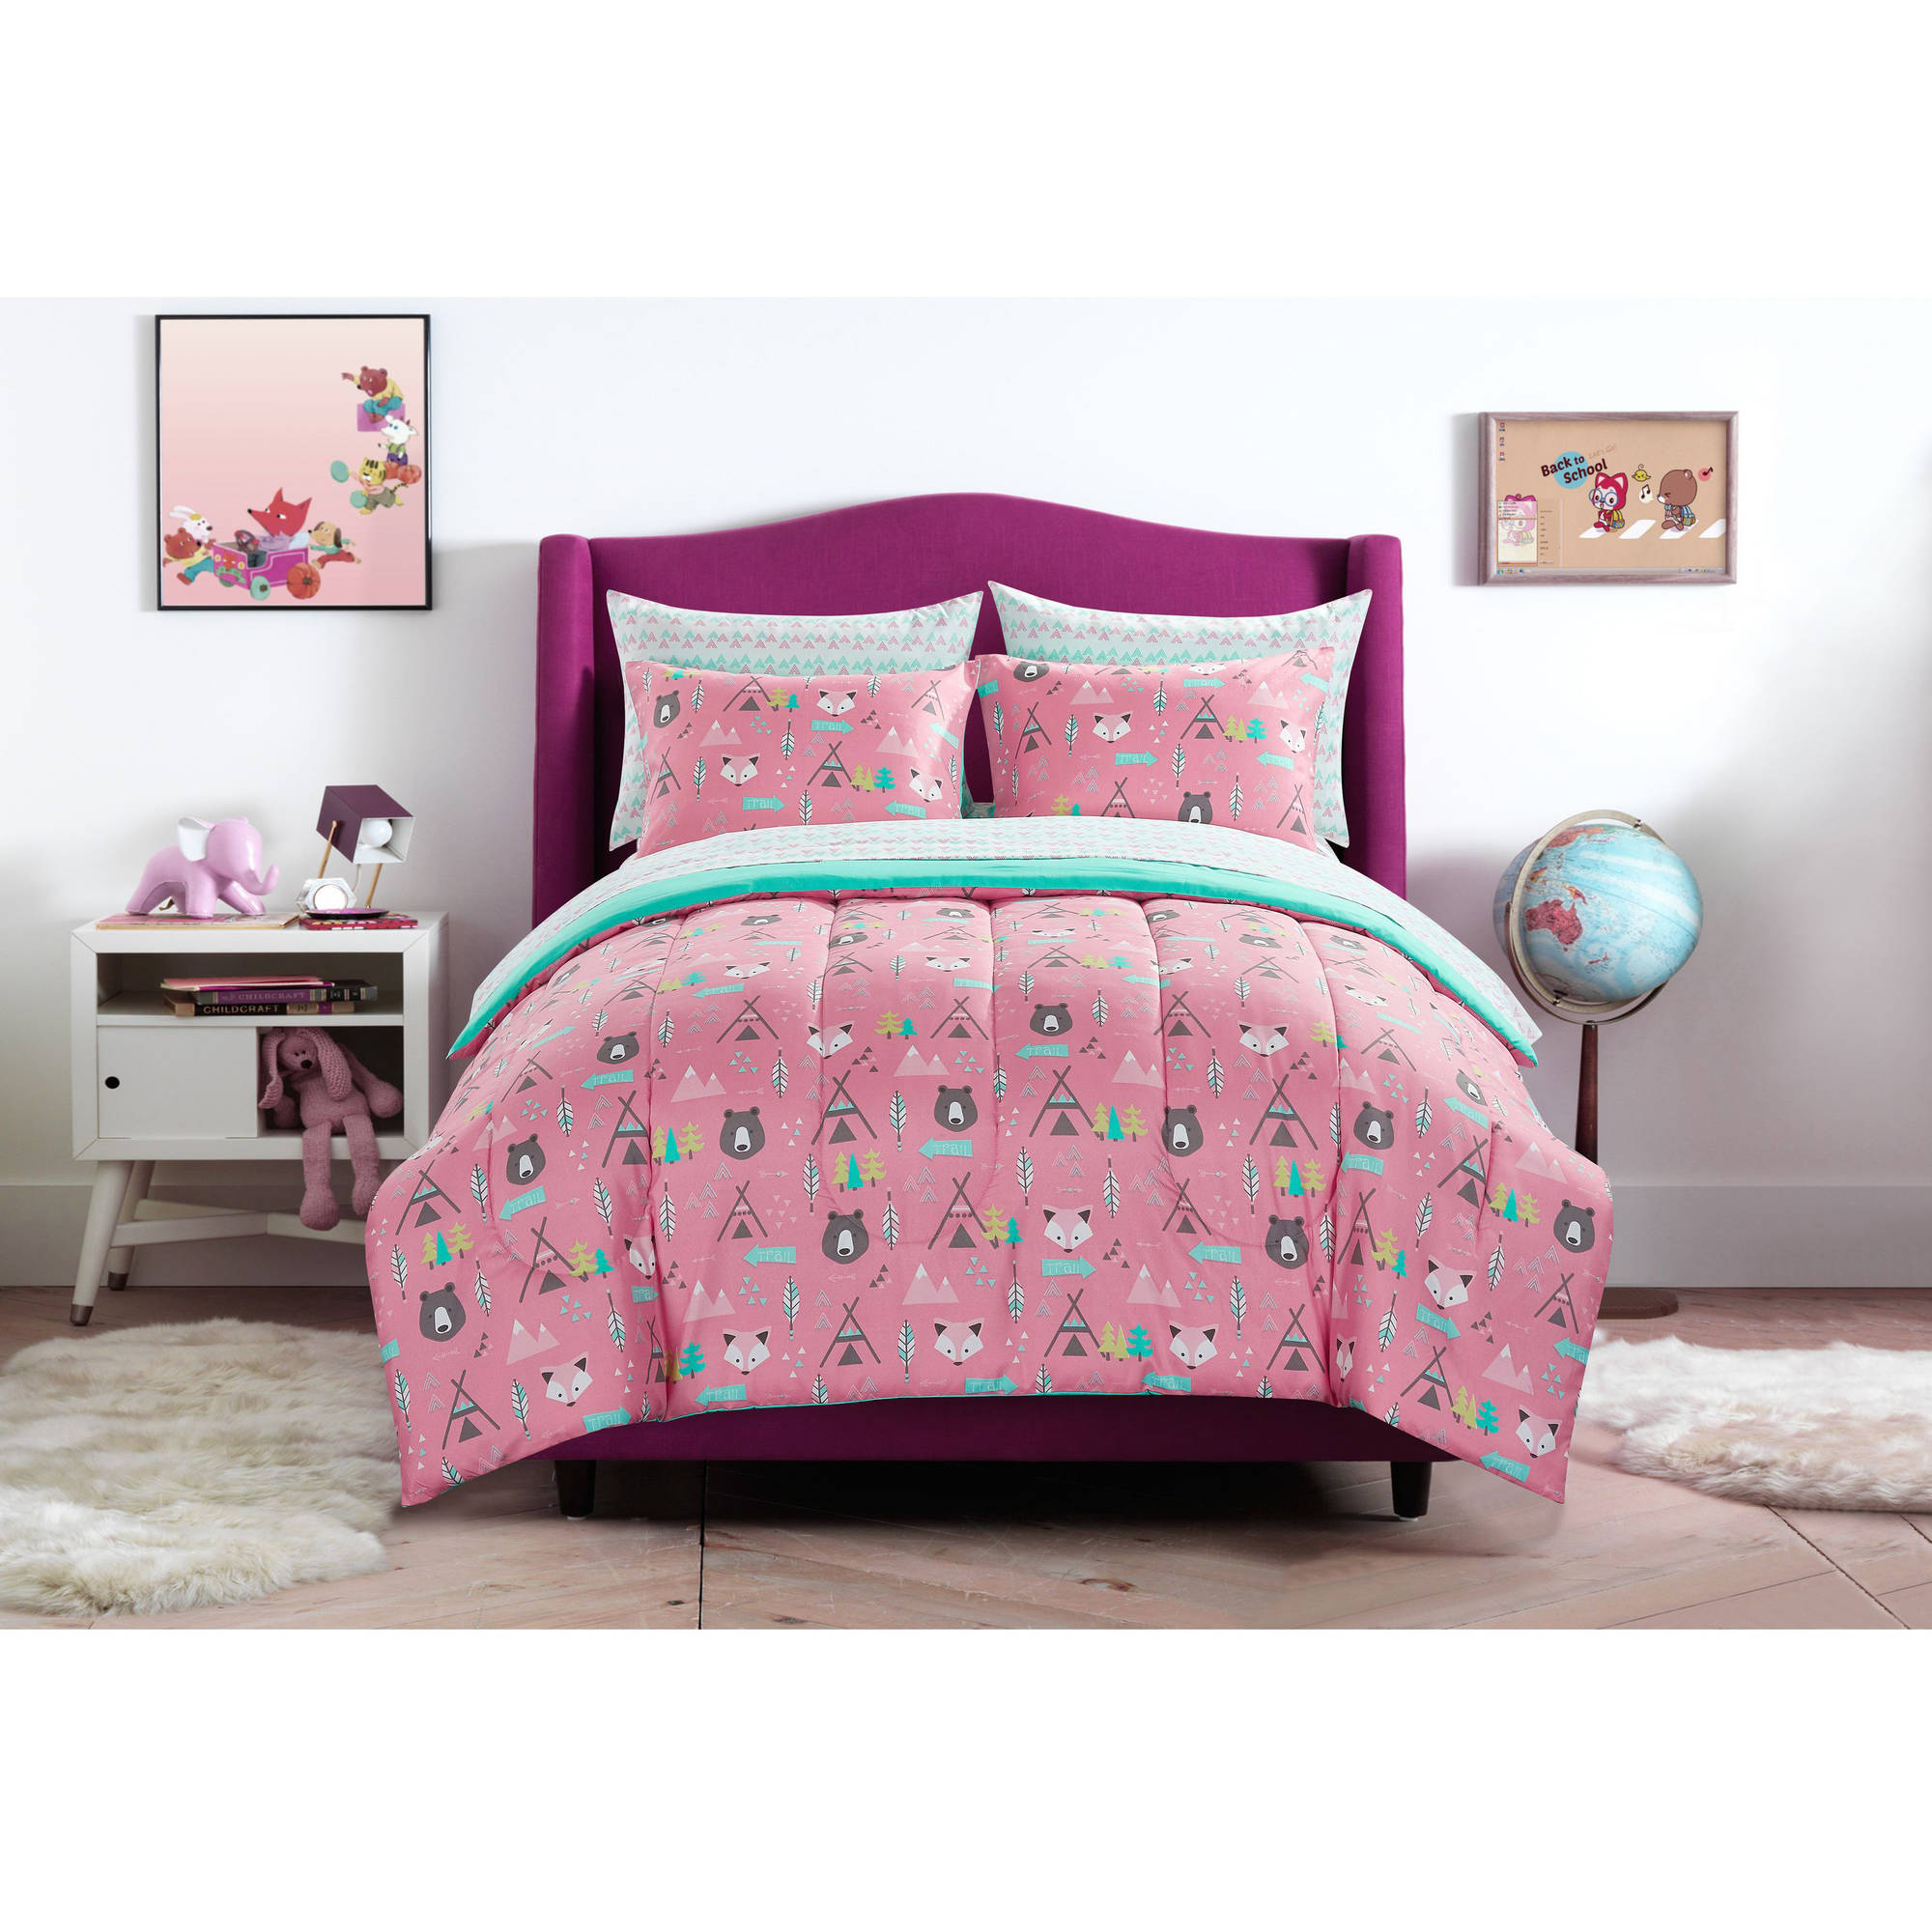 Mainstays Kids Woodland Safari Girl Bed in a Bag Bedding Set by Idea Nuova